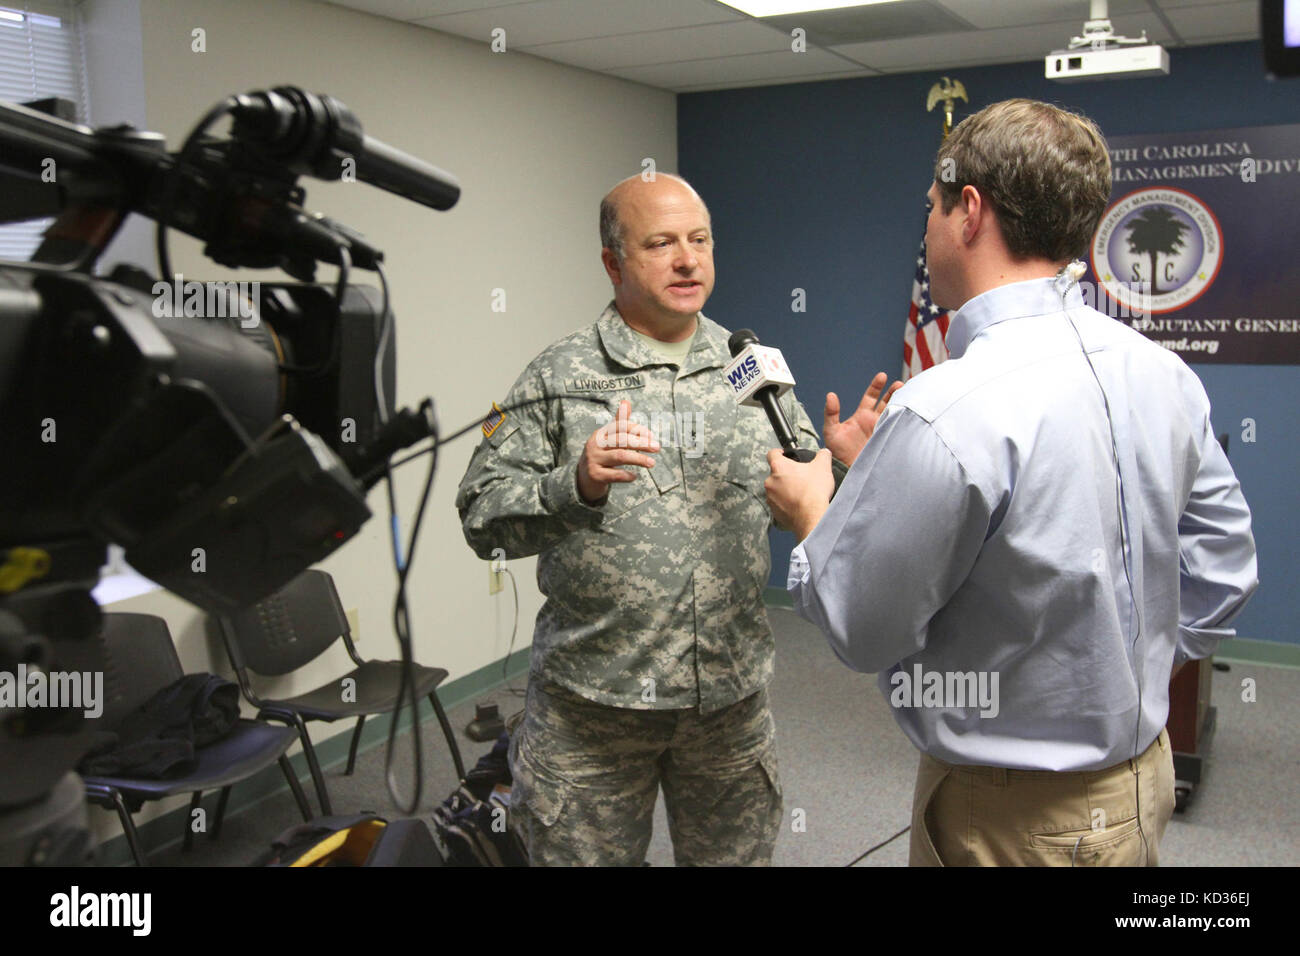 South Carolina Adjutant General, Maj. Gen. Robert E. Livingston, conducts an interview with local media after the - Stock Image